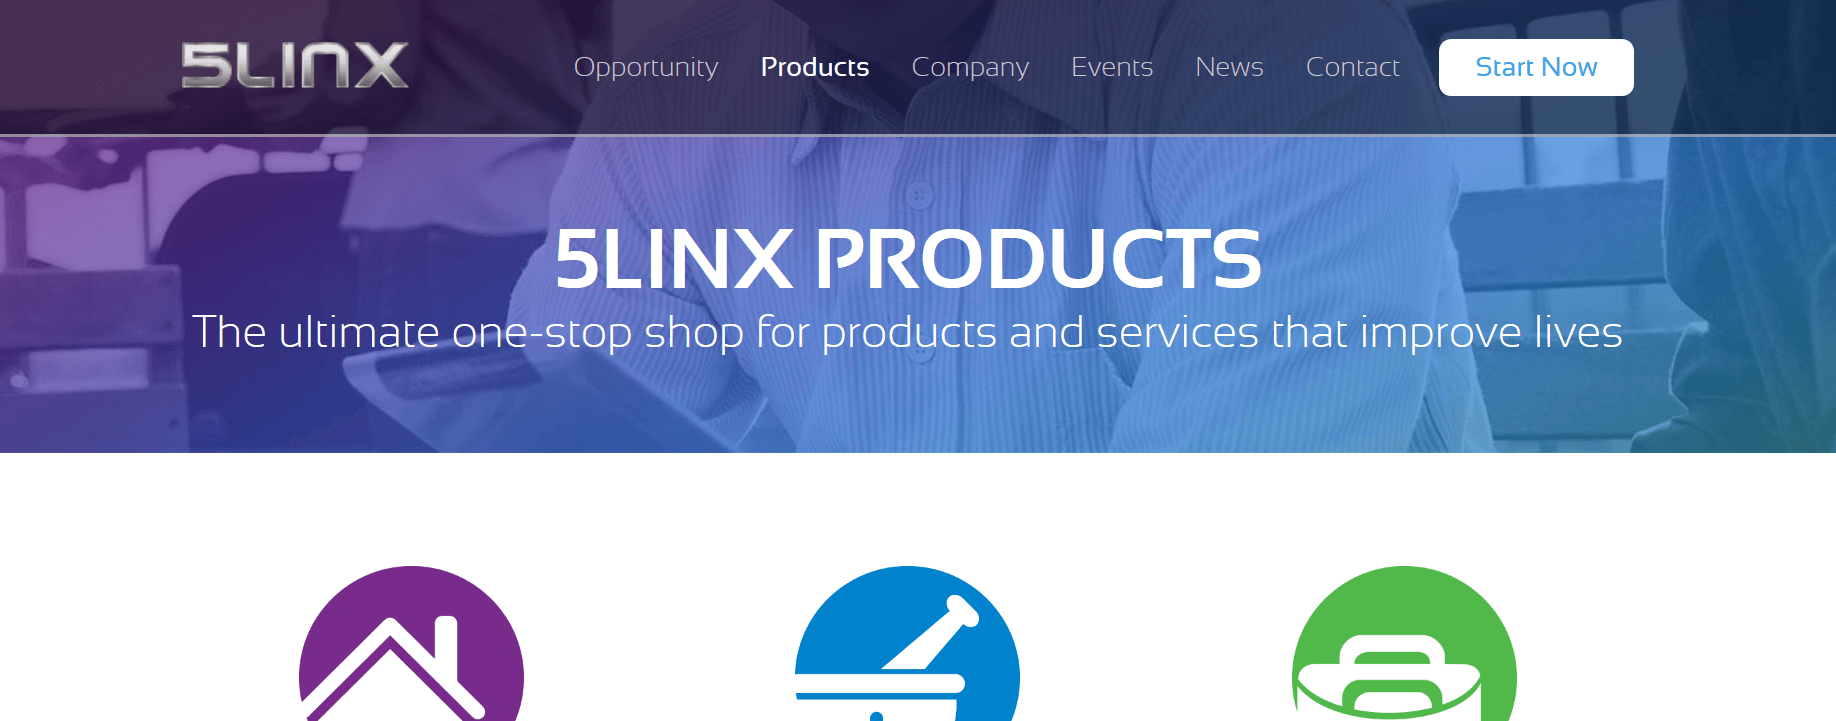 5linx products